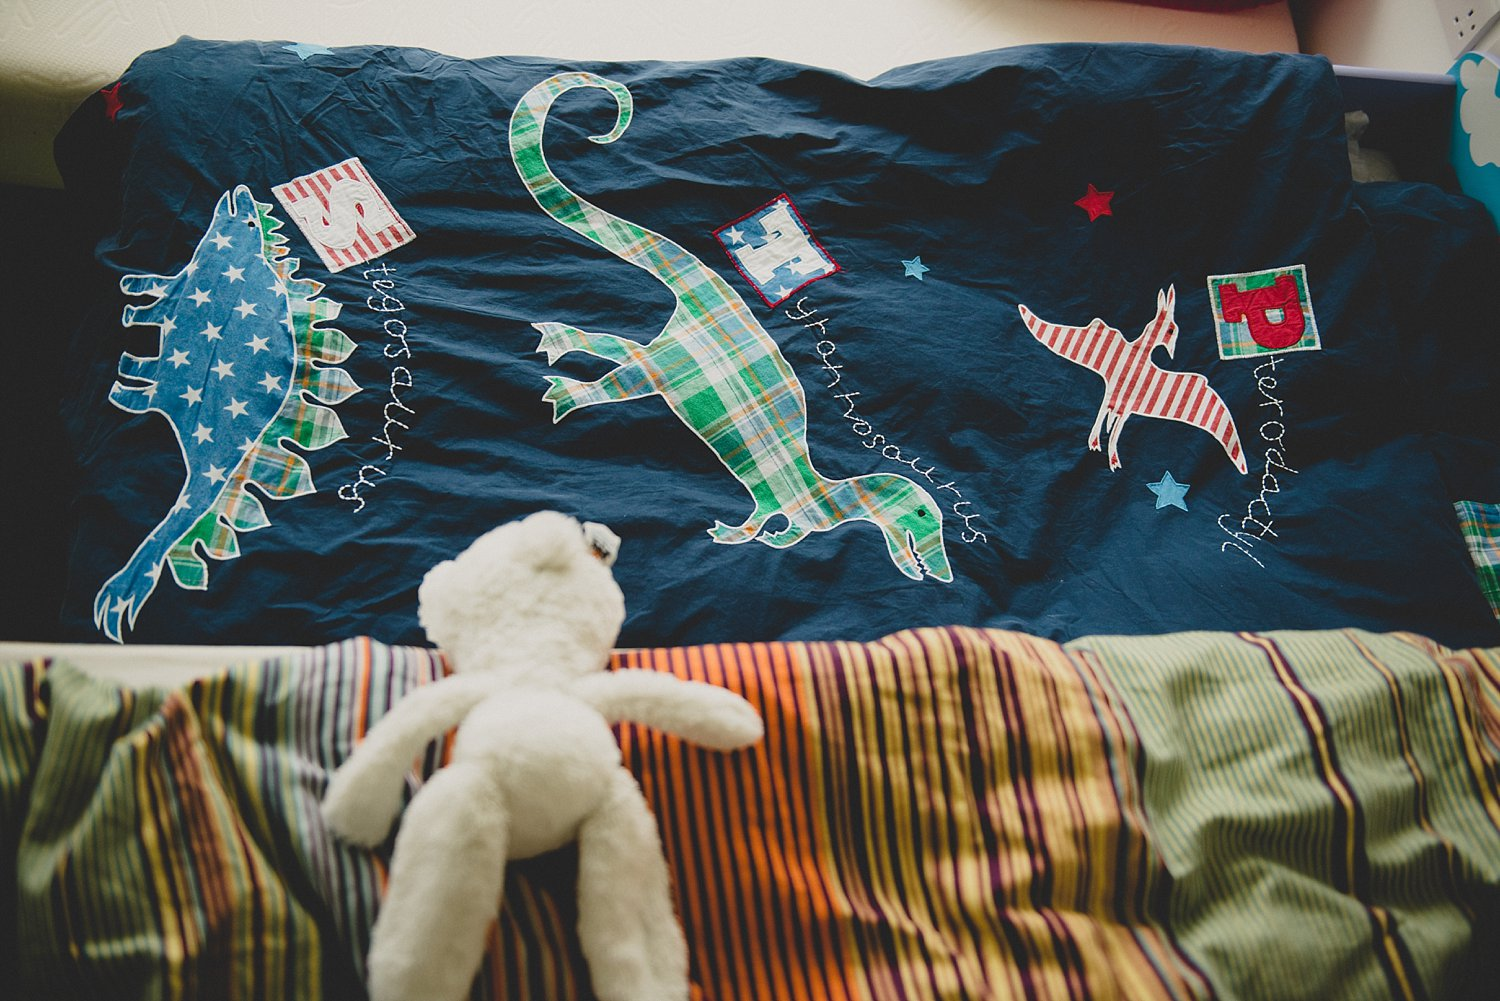 toys and dinosaurs - 5 Tips for Doing Lifestyle Photo Sessions